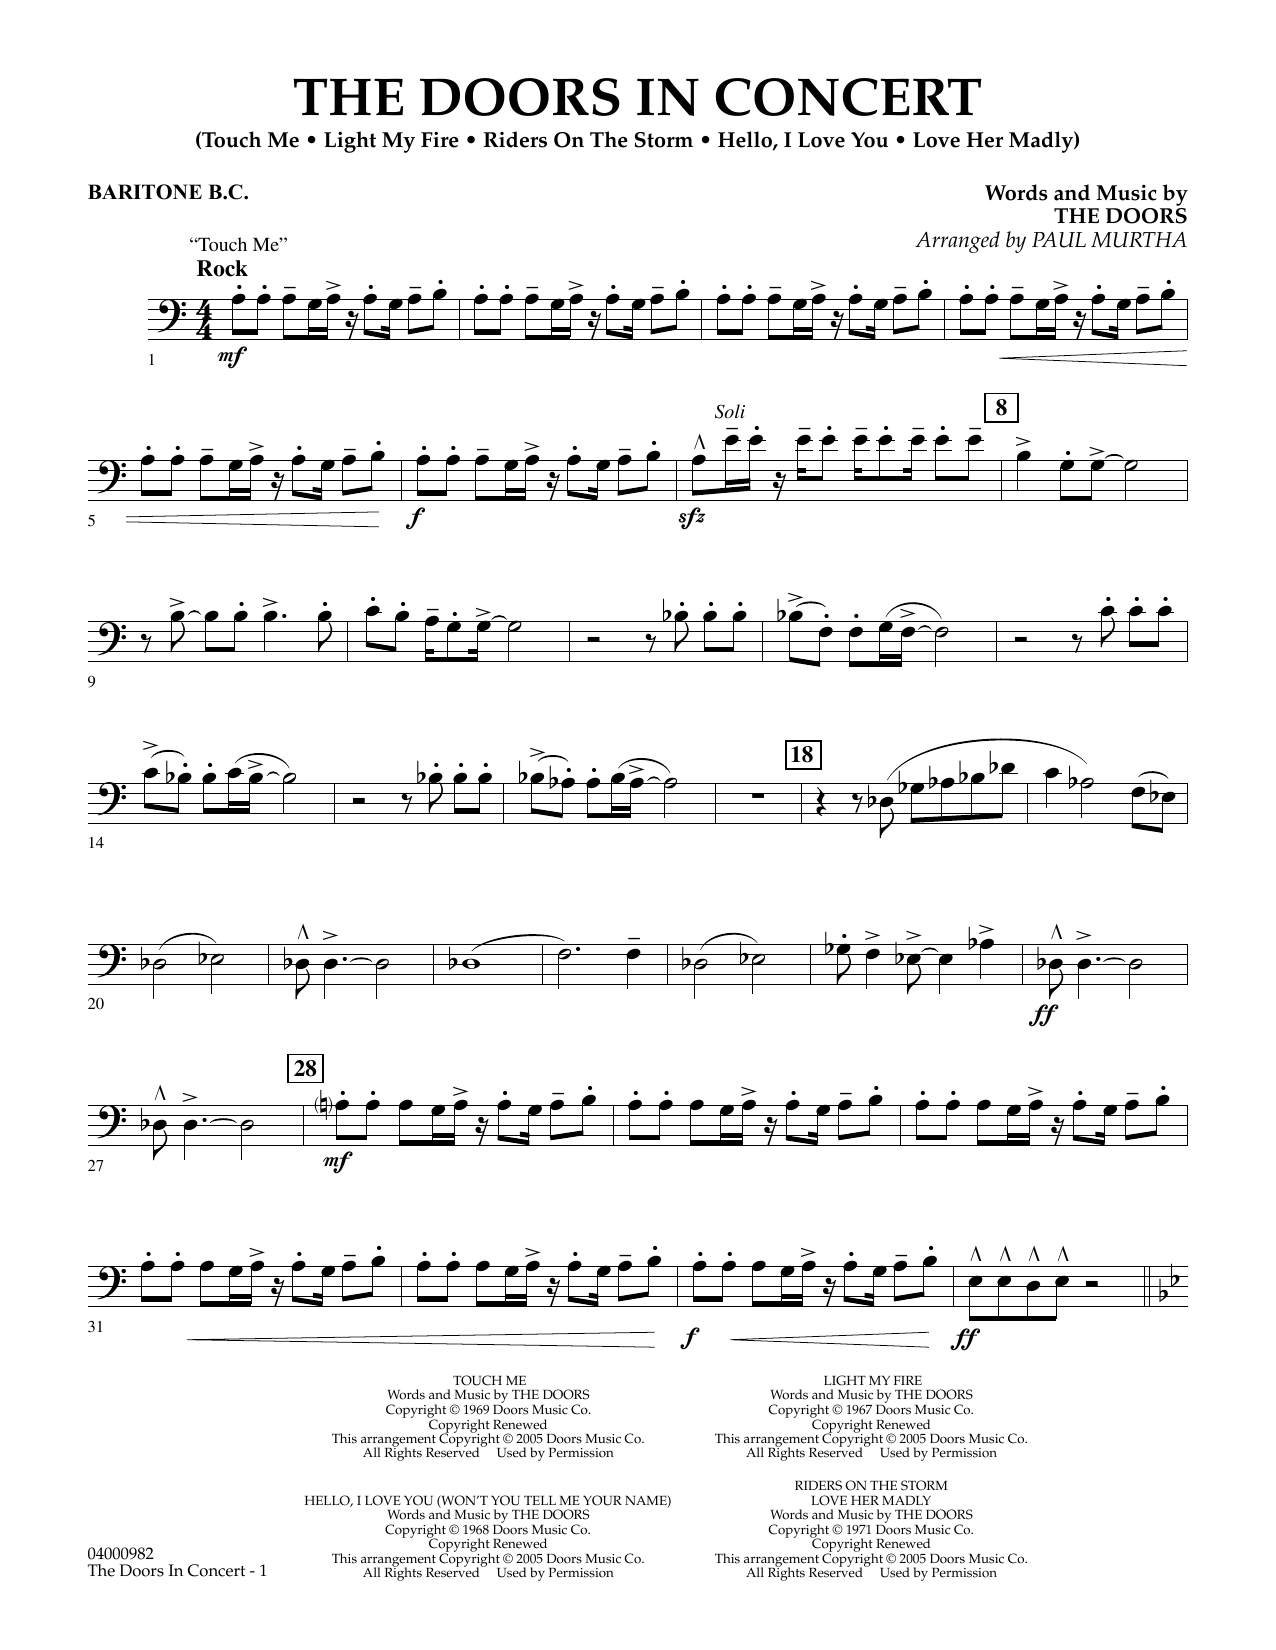 The Doors The Doors in Concert (arr. Paul Murtha) - Baritone B.C. sheet music notes and chords. Download Printable PDF.